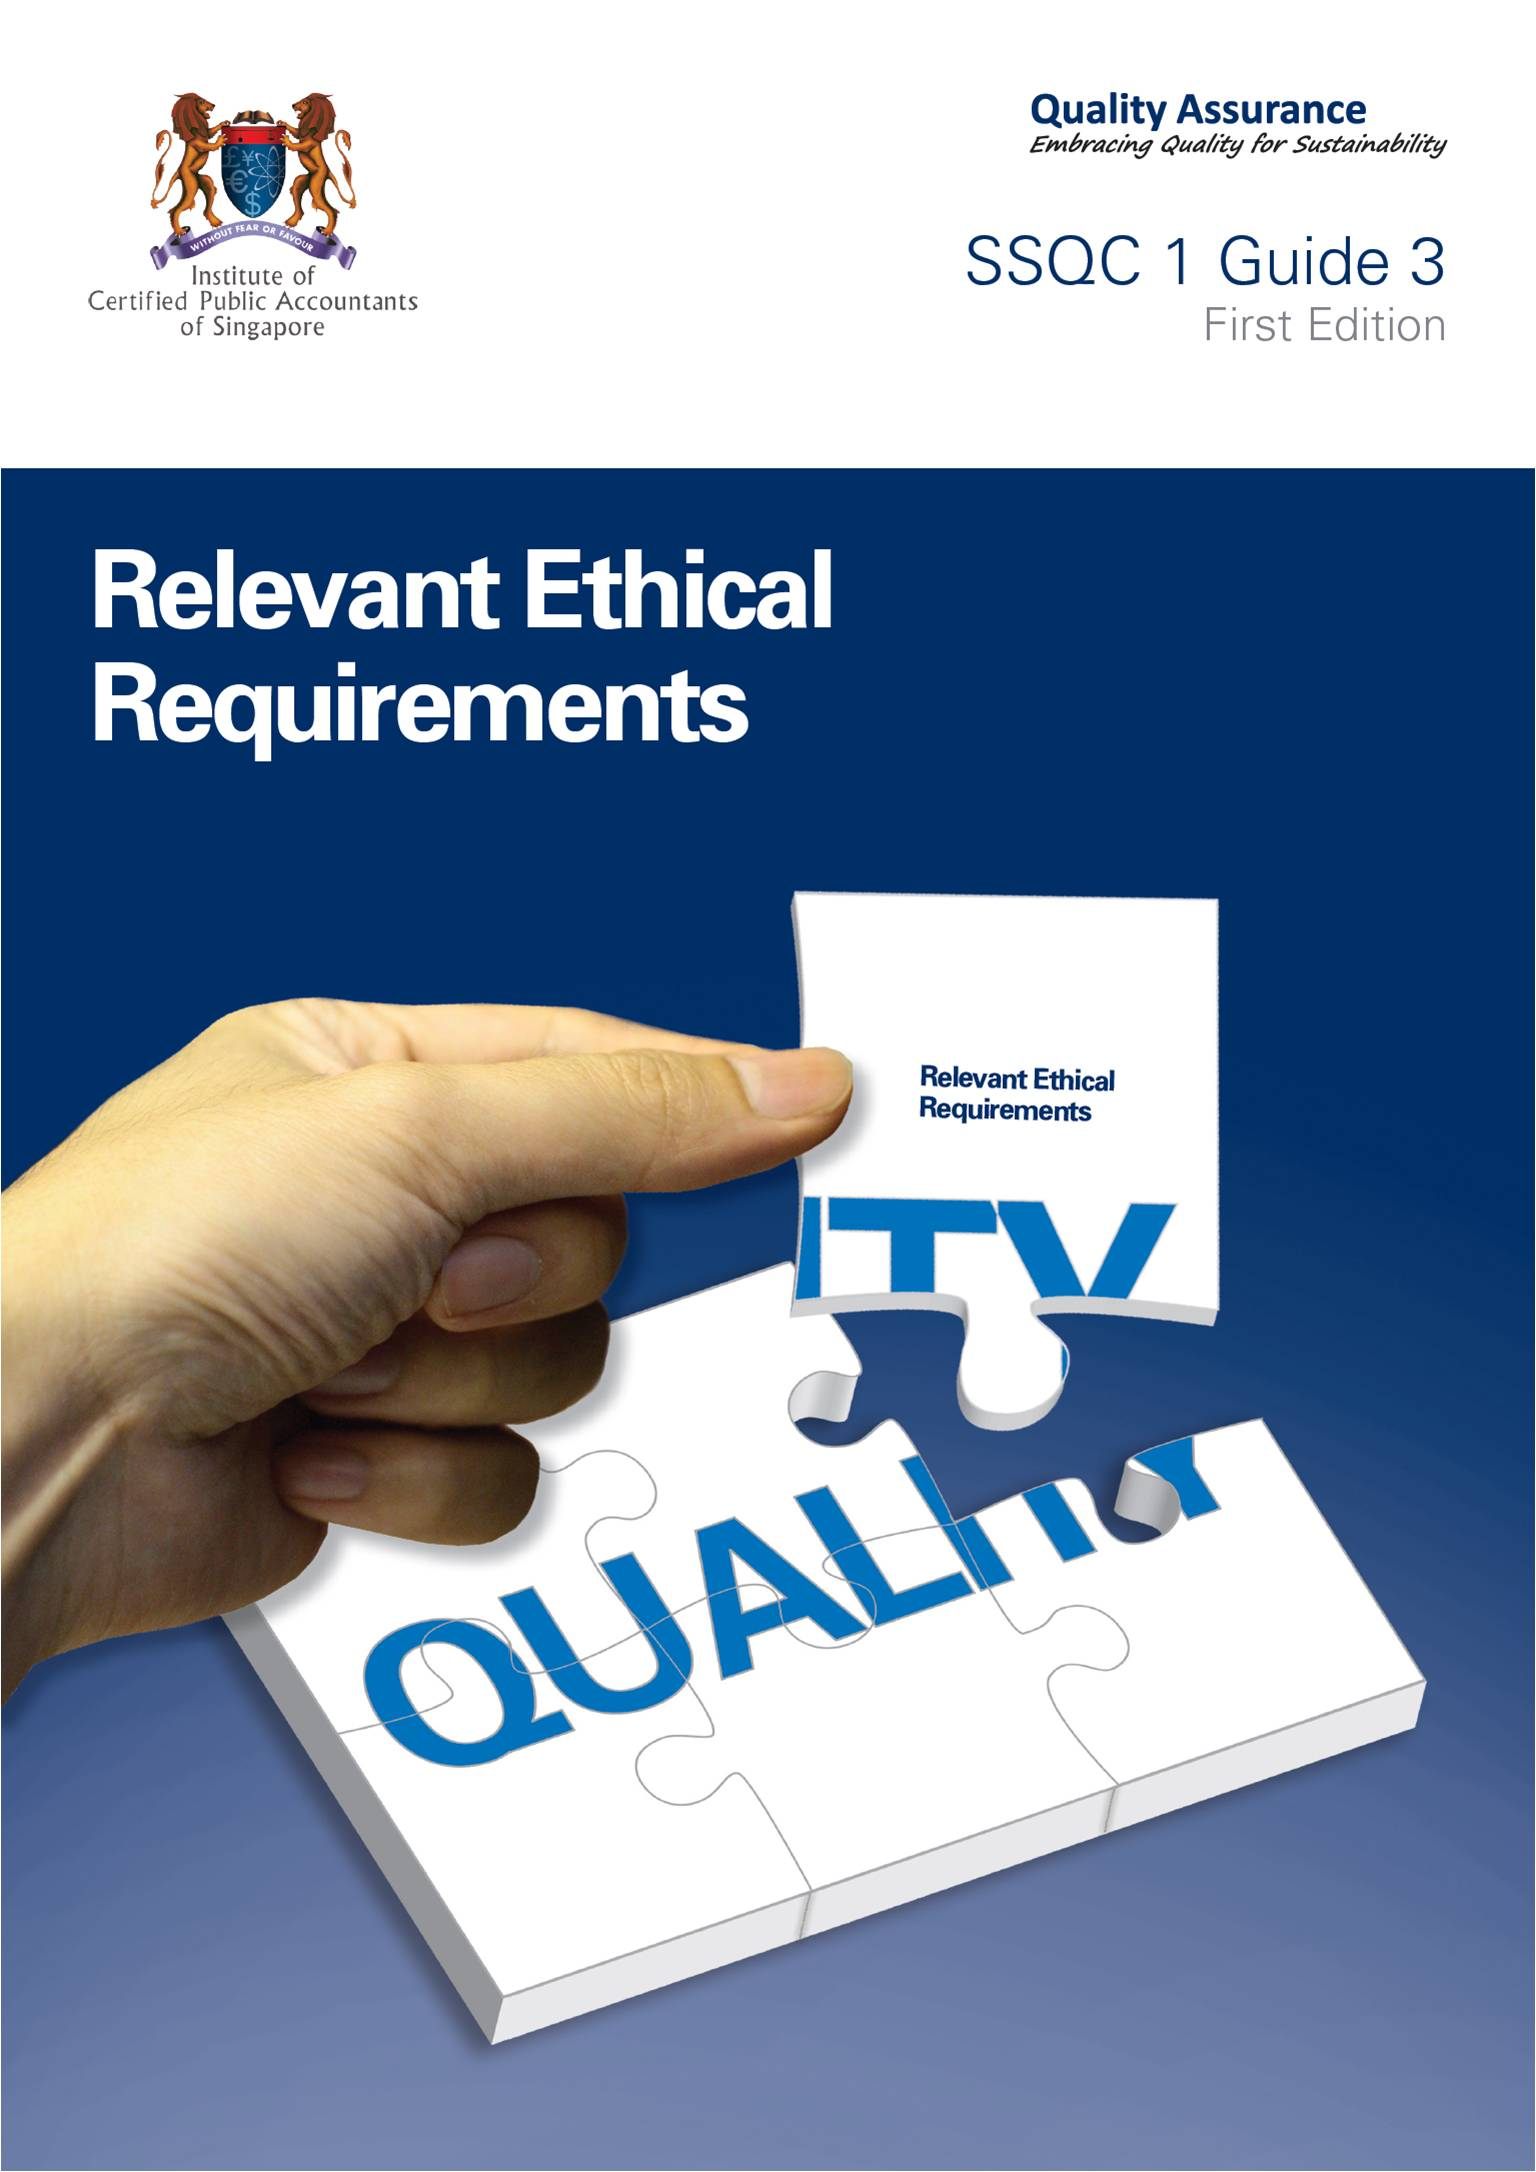 SSQC 1 Practice Guides Relevant Ethical Image